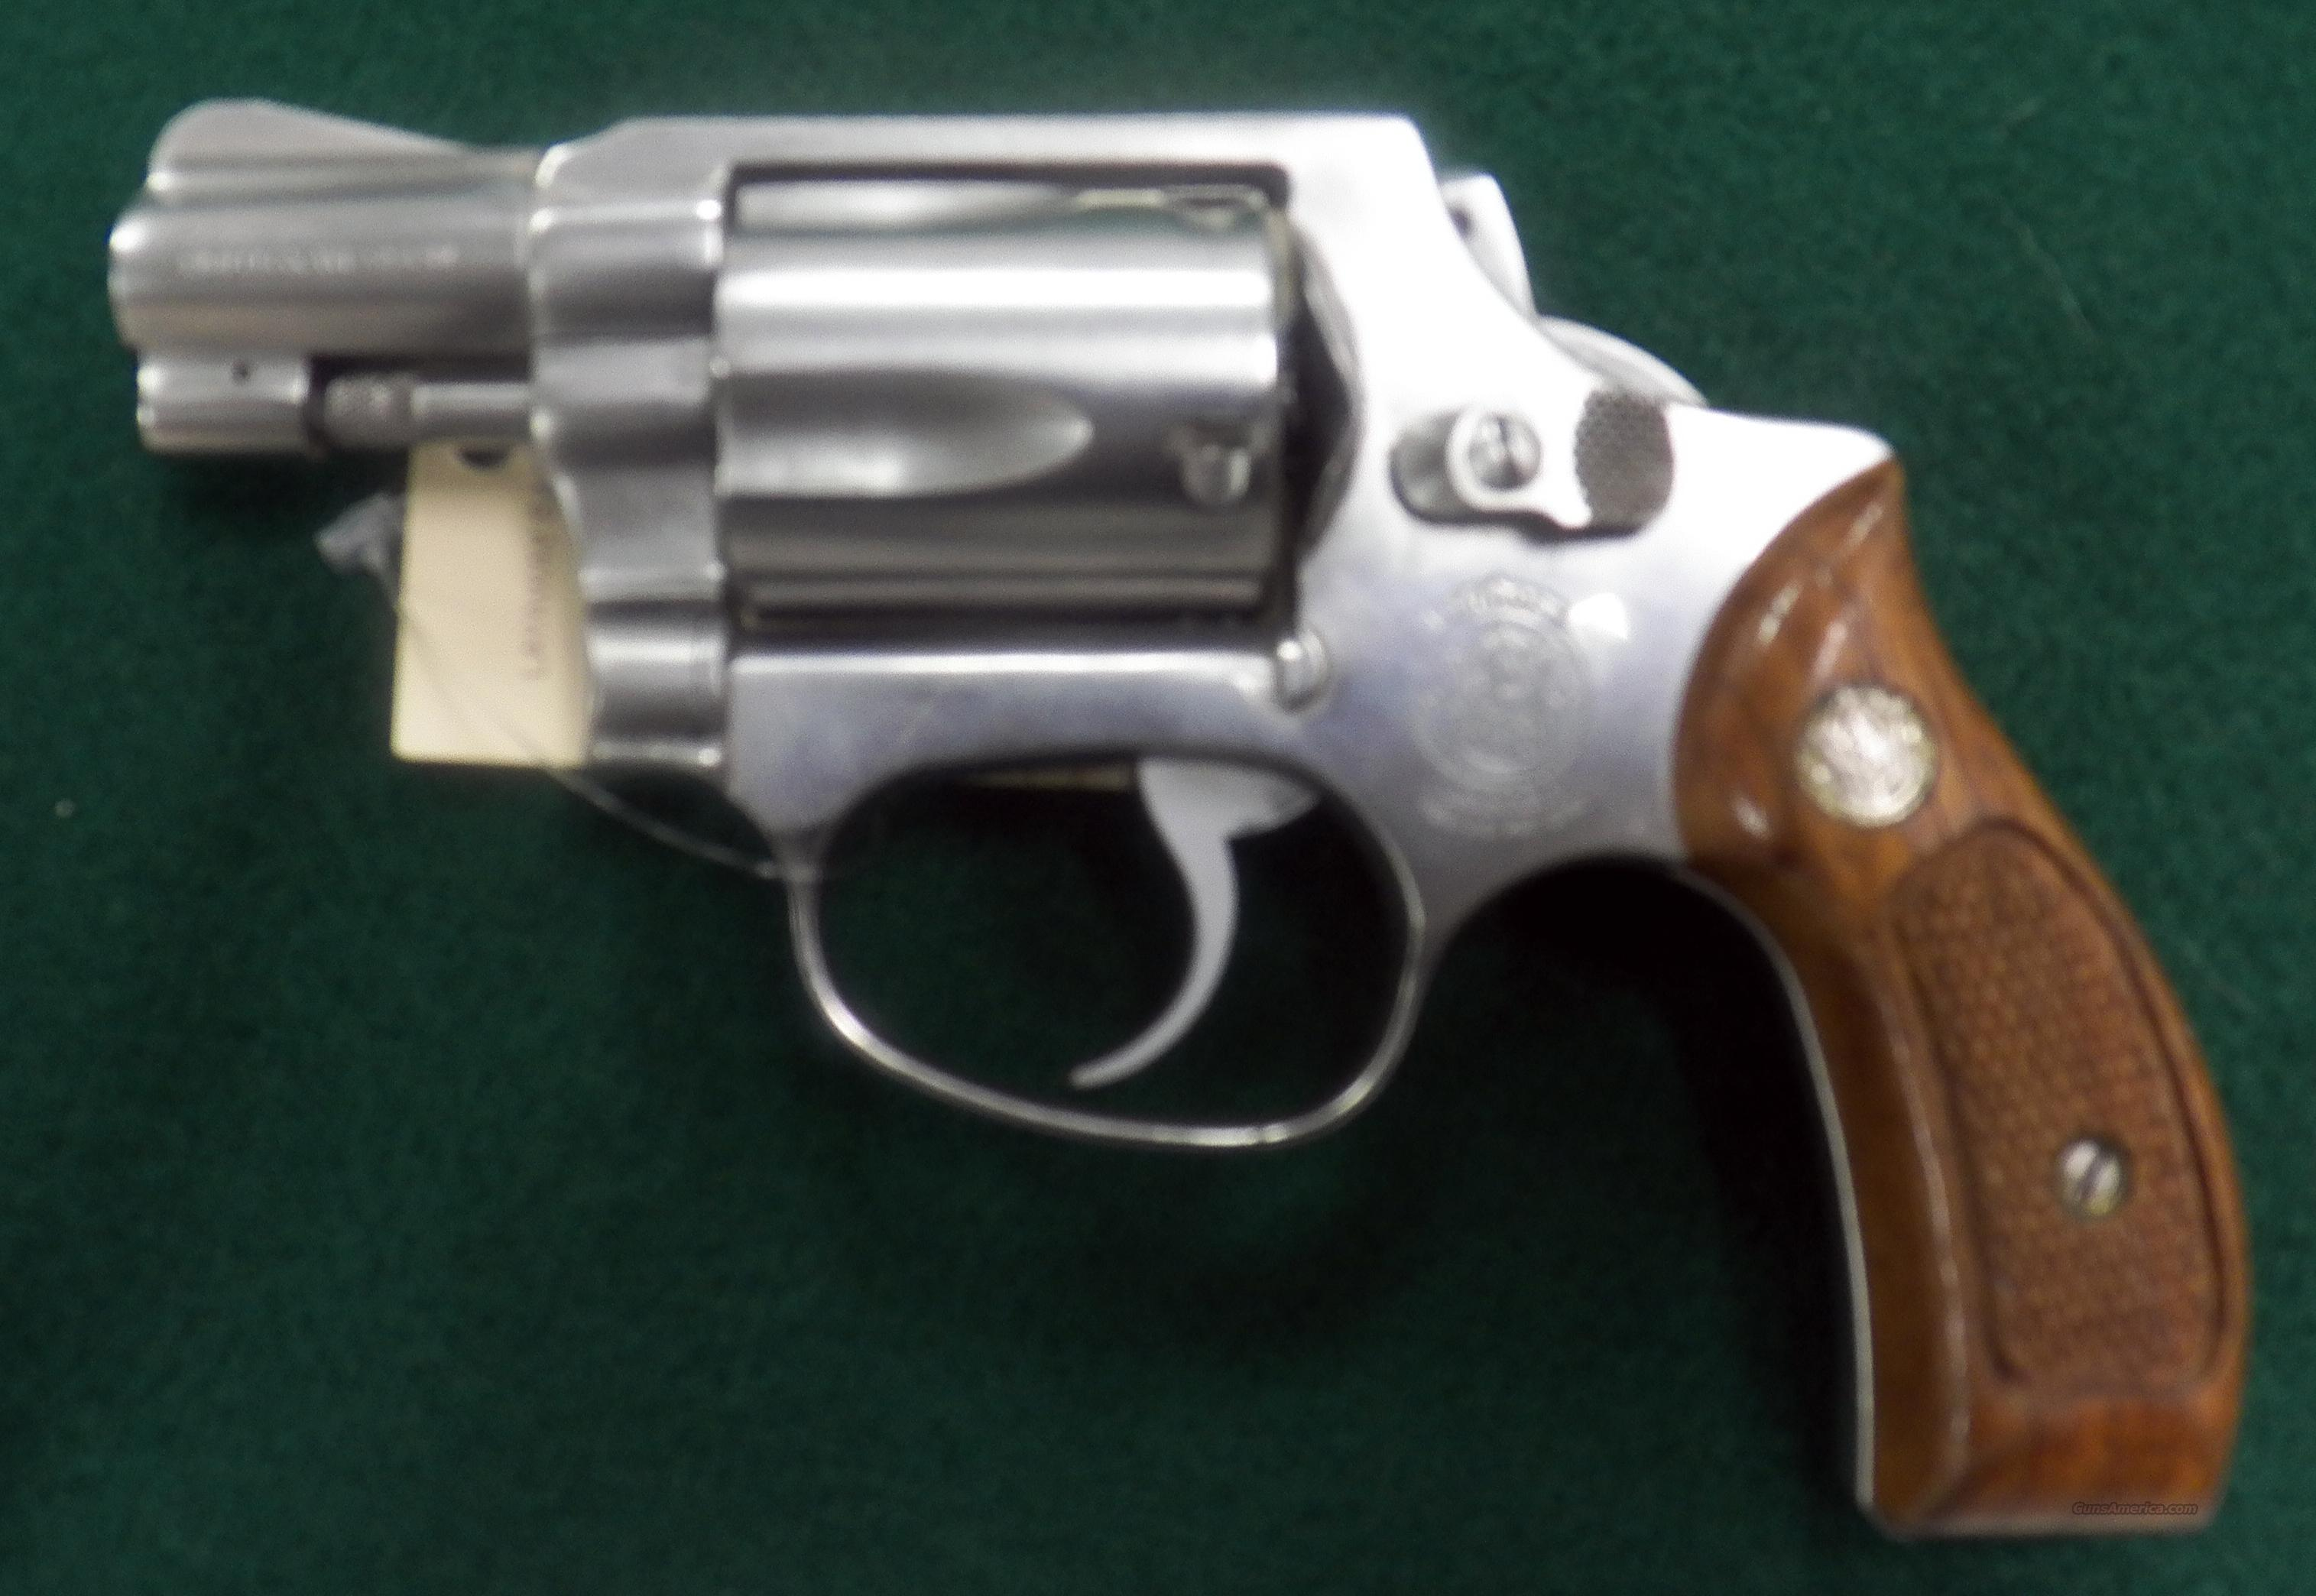 Smith & Wesson 60 - Stainless Steel Used  Guns > Pistols > Smith & Wesson Revolvers > Pocket Pistols